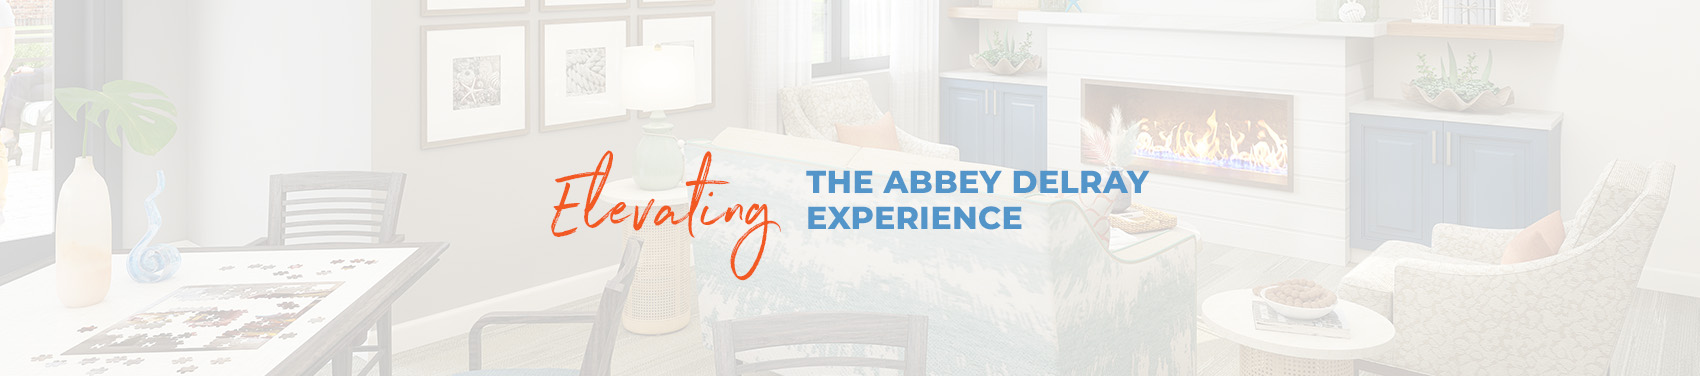 Independent Living Newly Remodeled Delray Beach FL Abbey Delray